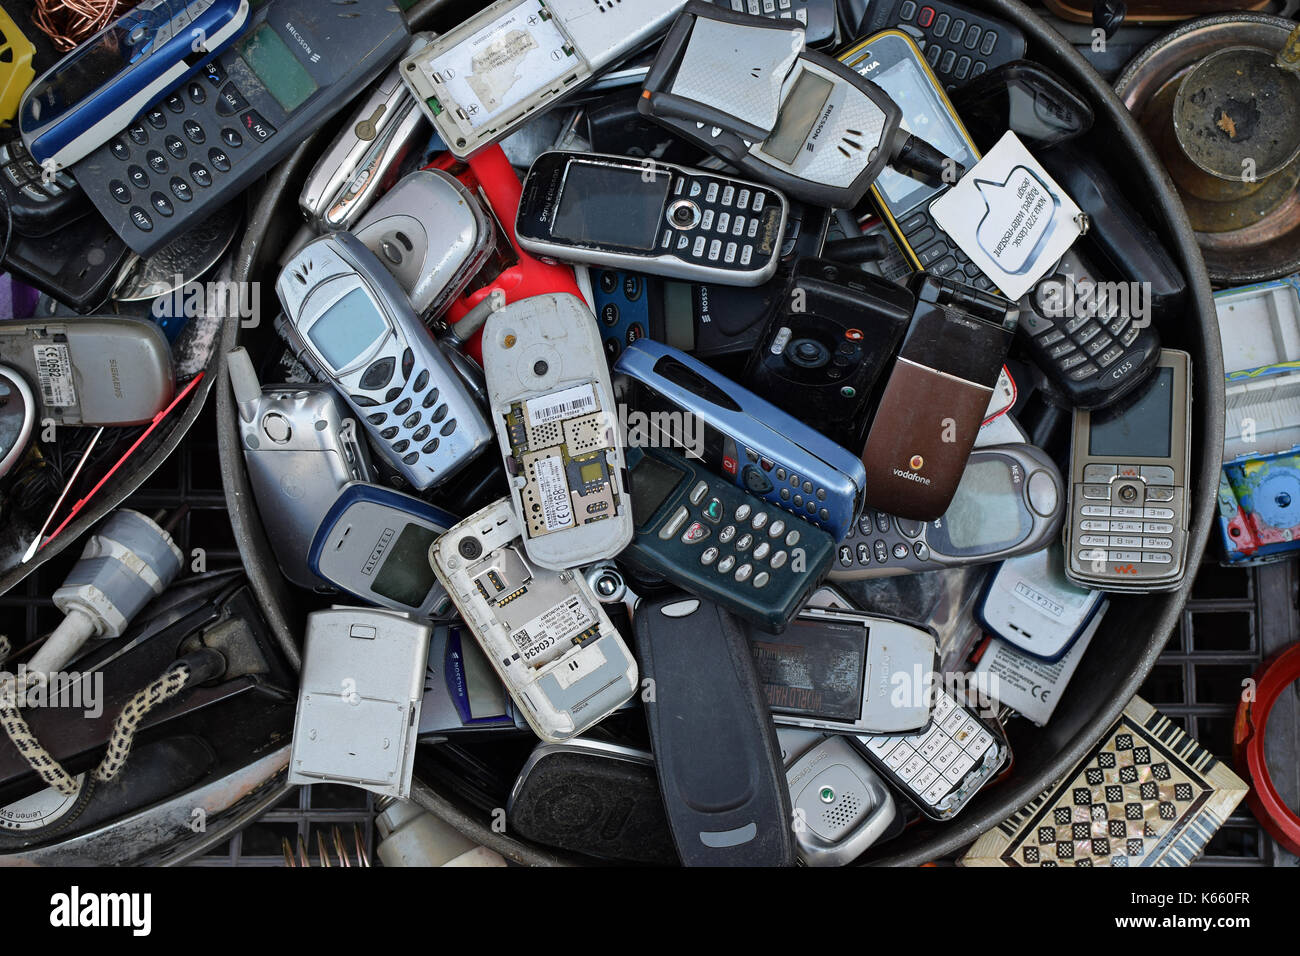 ATHENS, GREECE - AUGUST 4, 2016: Old mobile cell phones. Pile of broken handphones for sale at junk shop. - Stock Image